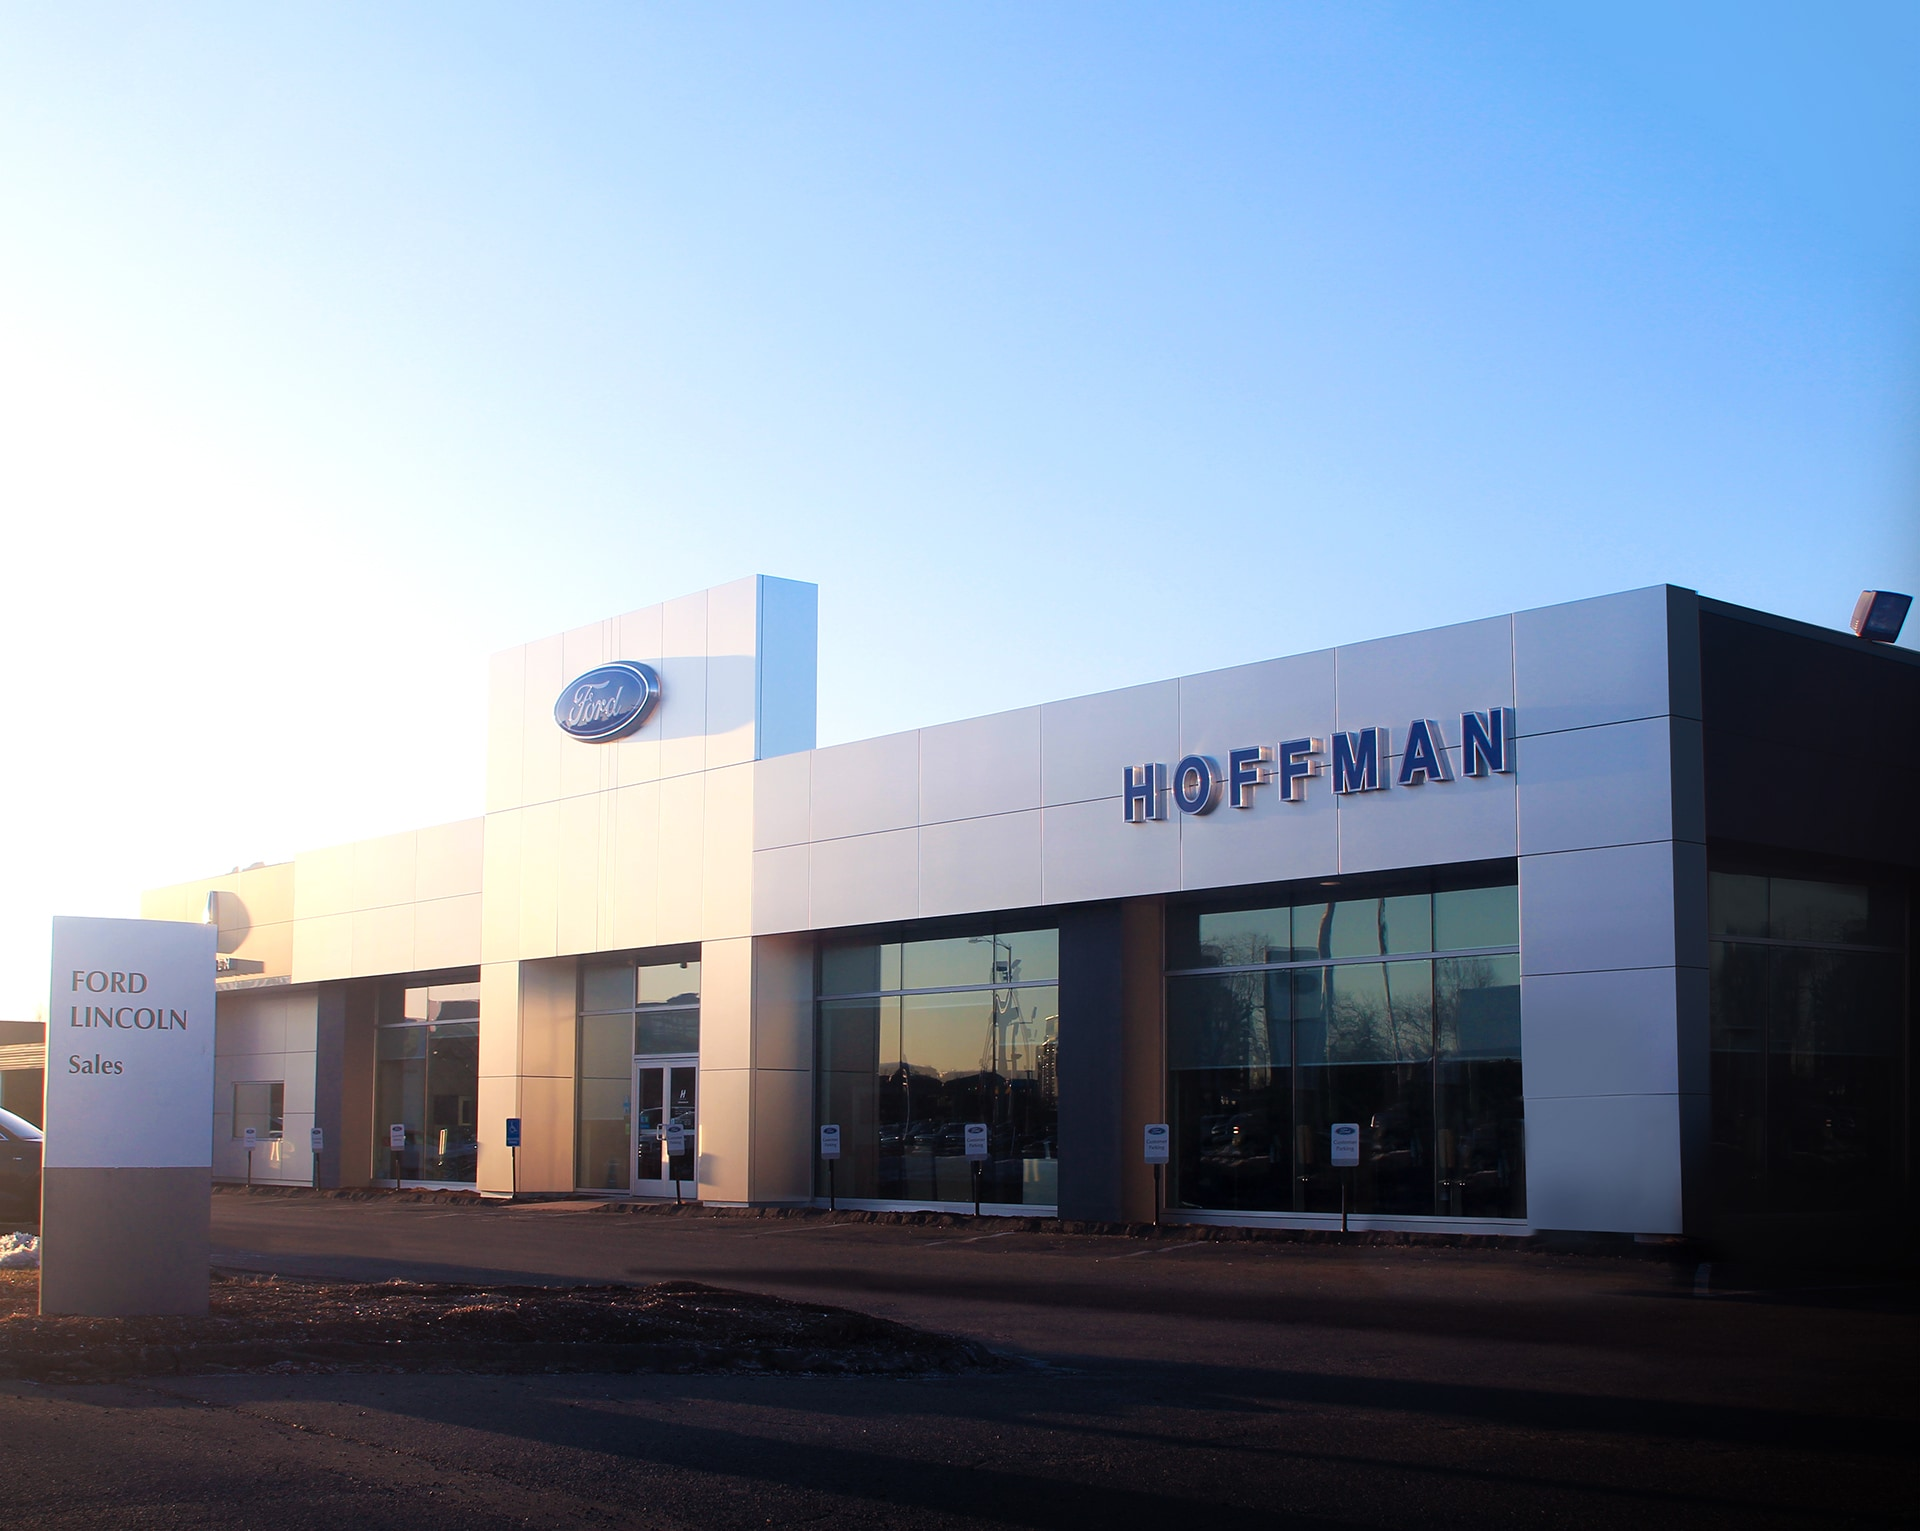 Hoffman auto group used cars cars image 2018 for State motors lincoln dealer manchester nh